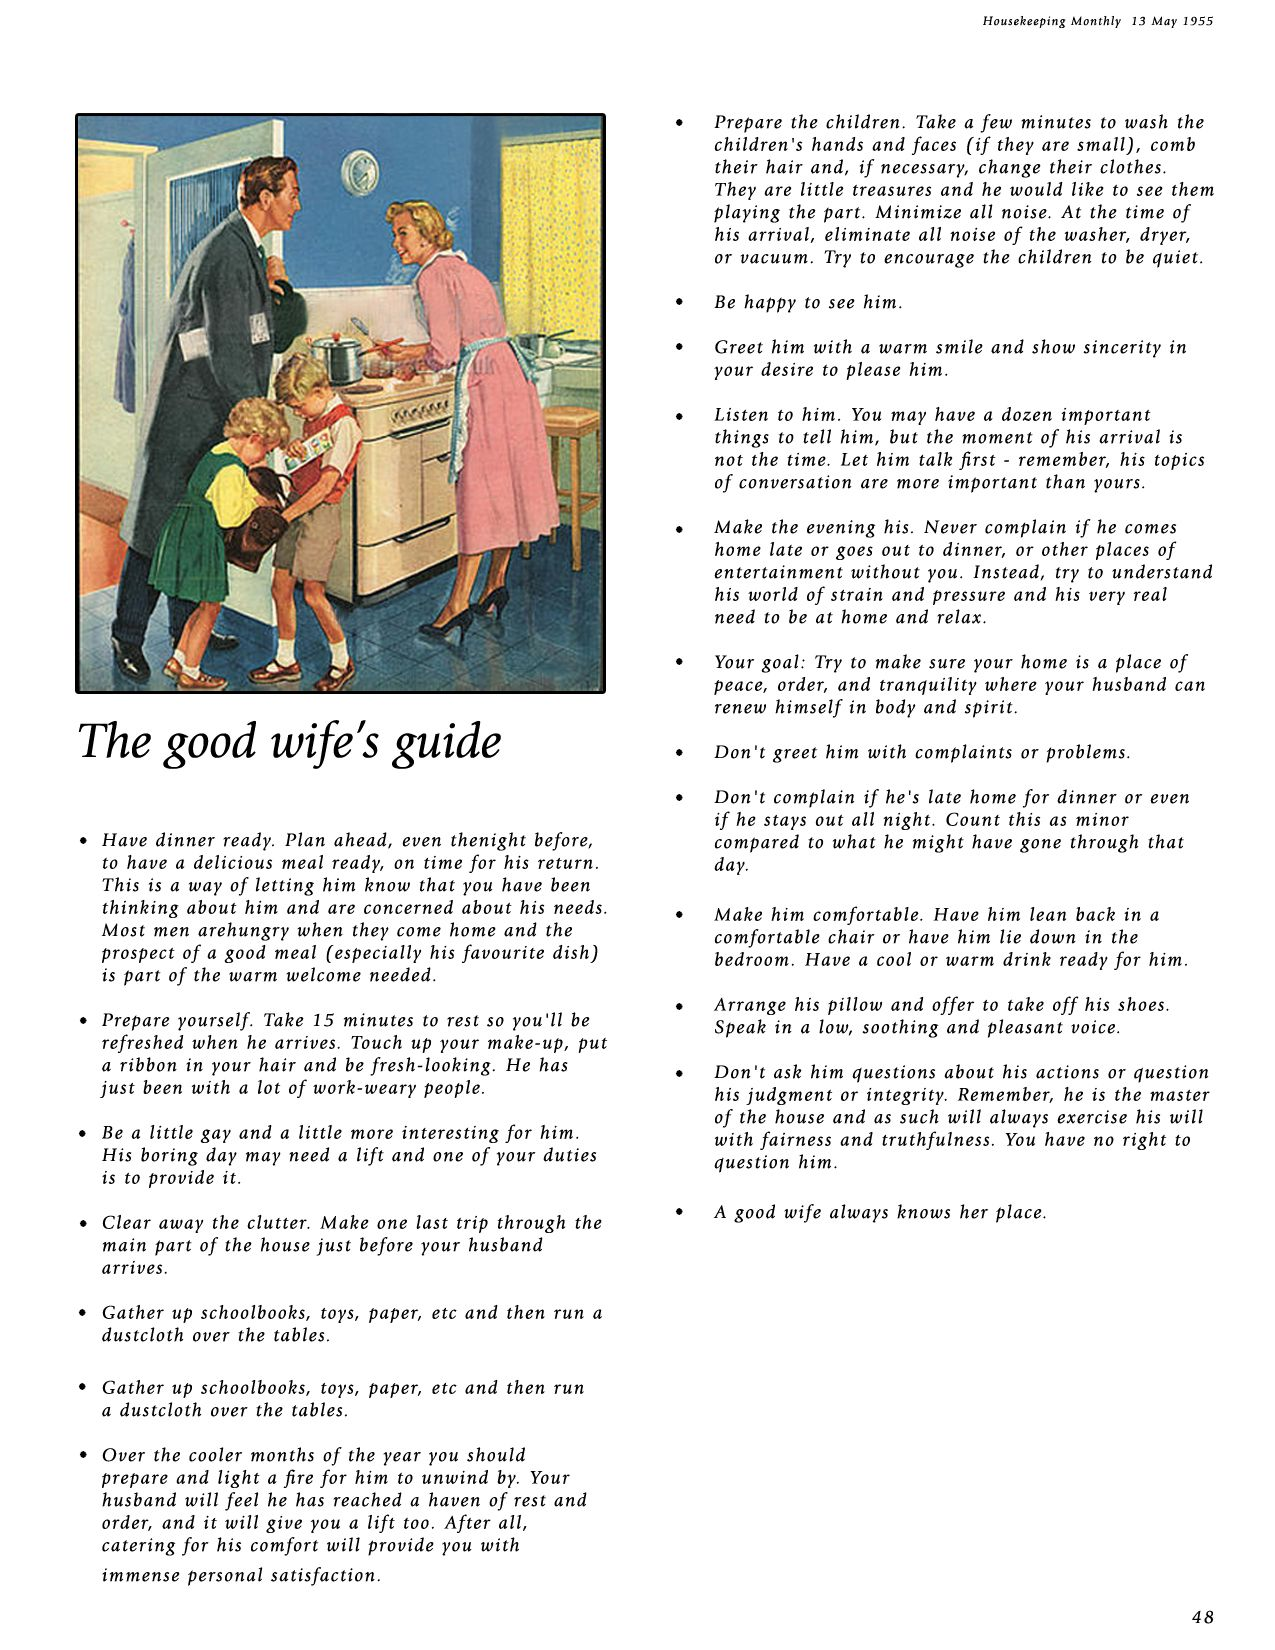 the good wife guide book 1955